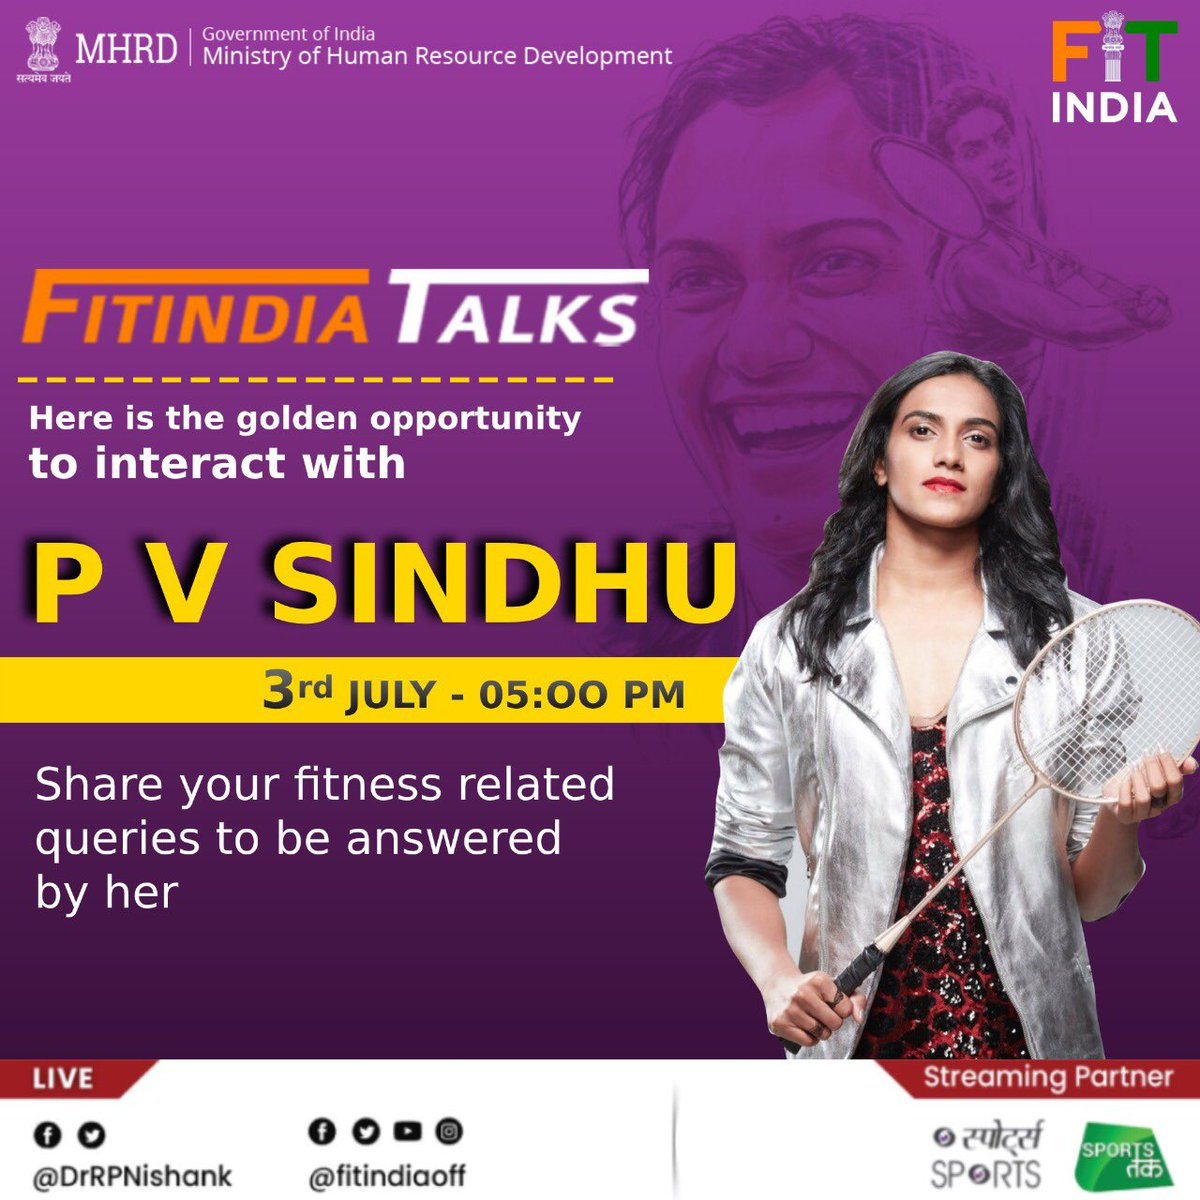 We are giving you a golden opportunity to ask questions directly to our Badminton superstar @Pvsindhu1! 😍 Catch her LIVE on the inaugural episode of #FitIndiaTalks on 3rd July at 5 pm and get to know her fitness mantra! #FitIndiaMovement @BAI_Media @aajtak @HRDMinistry